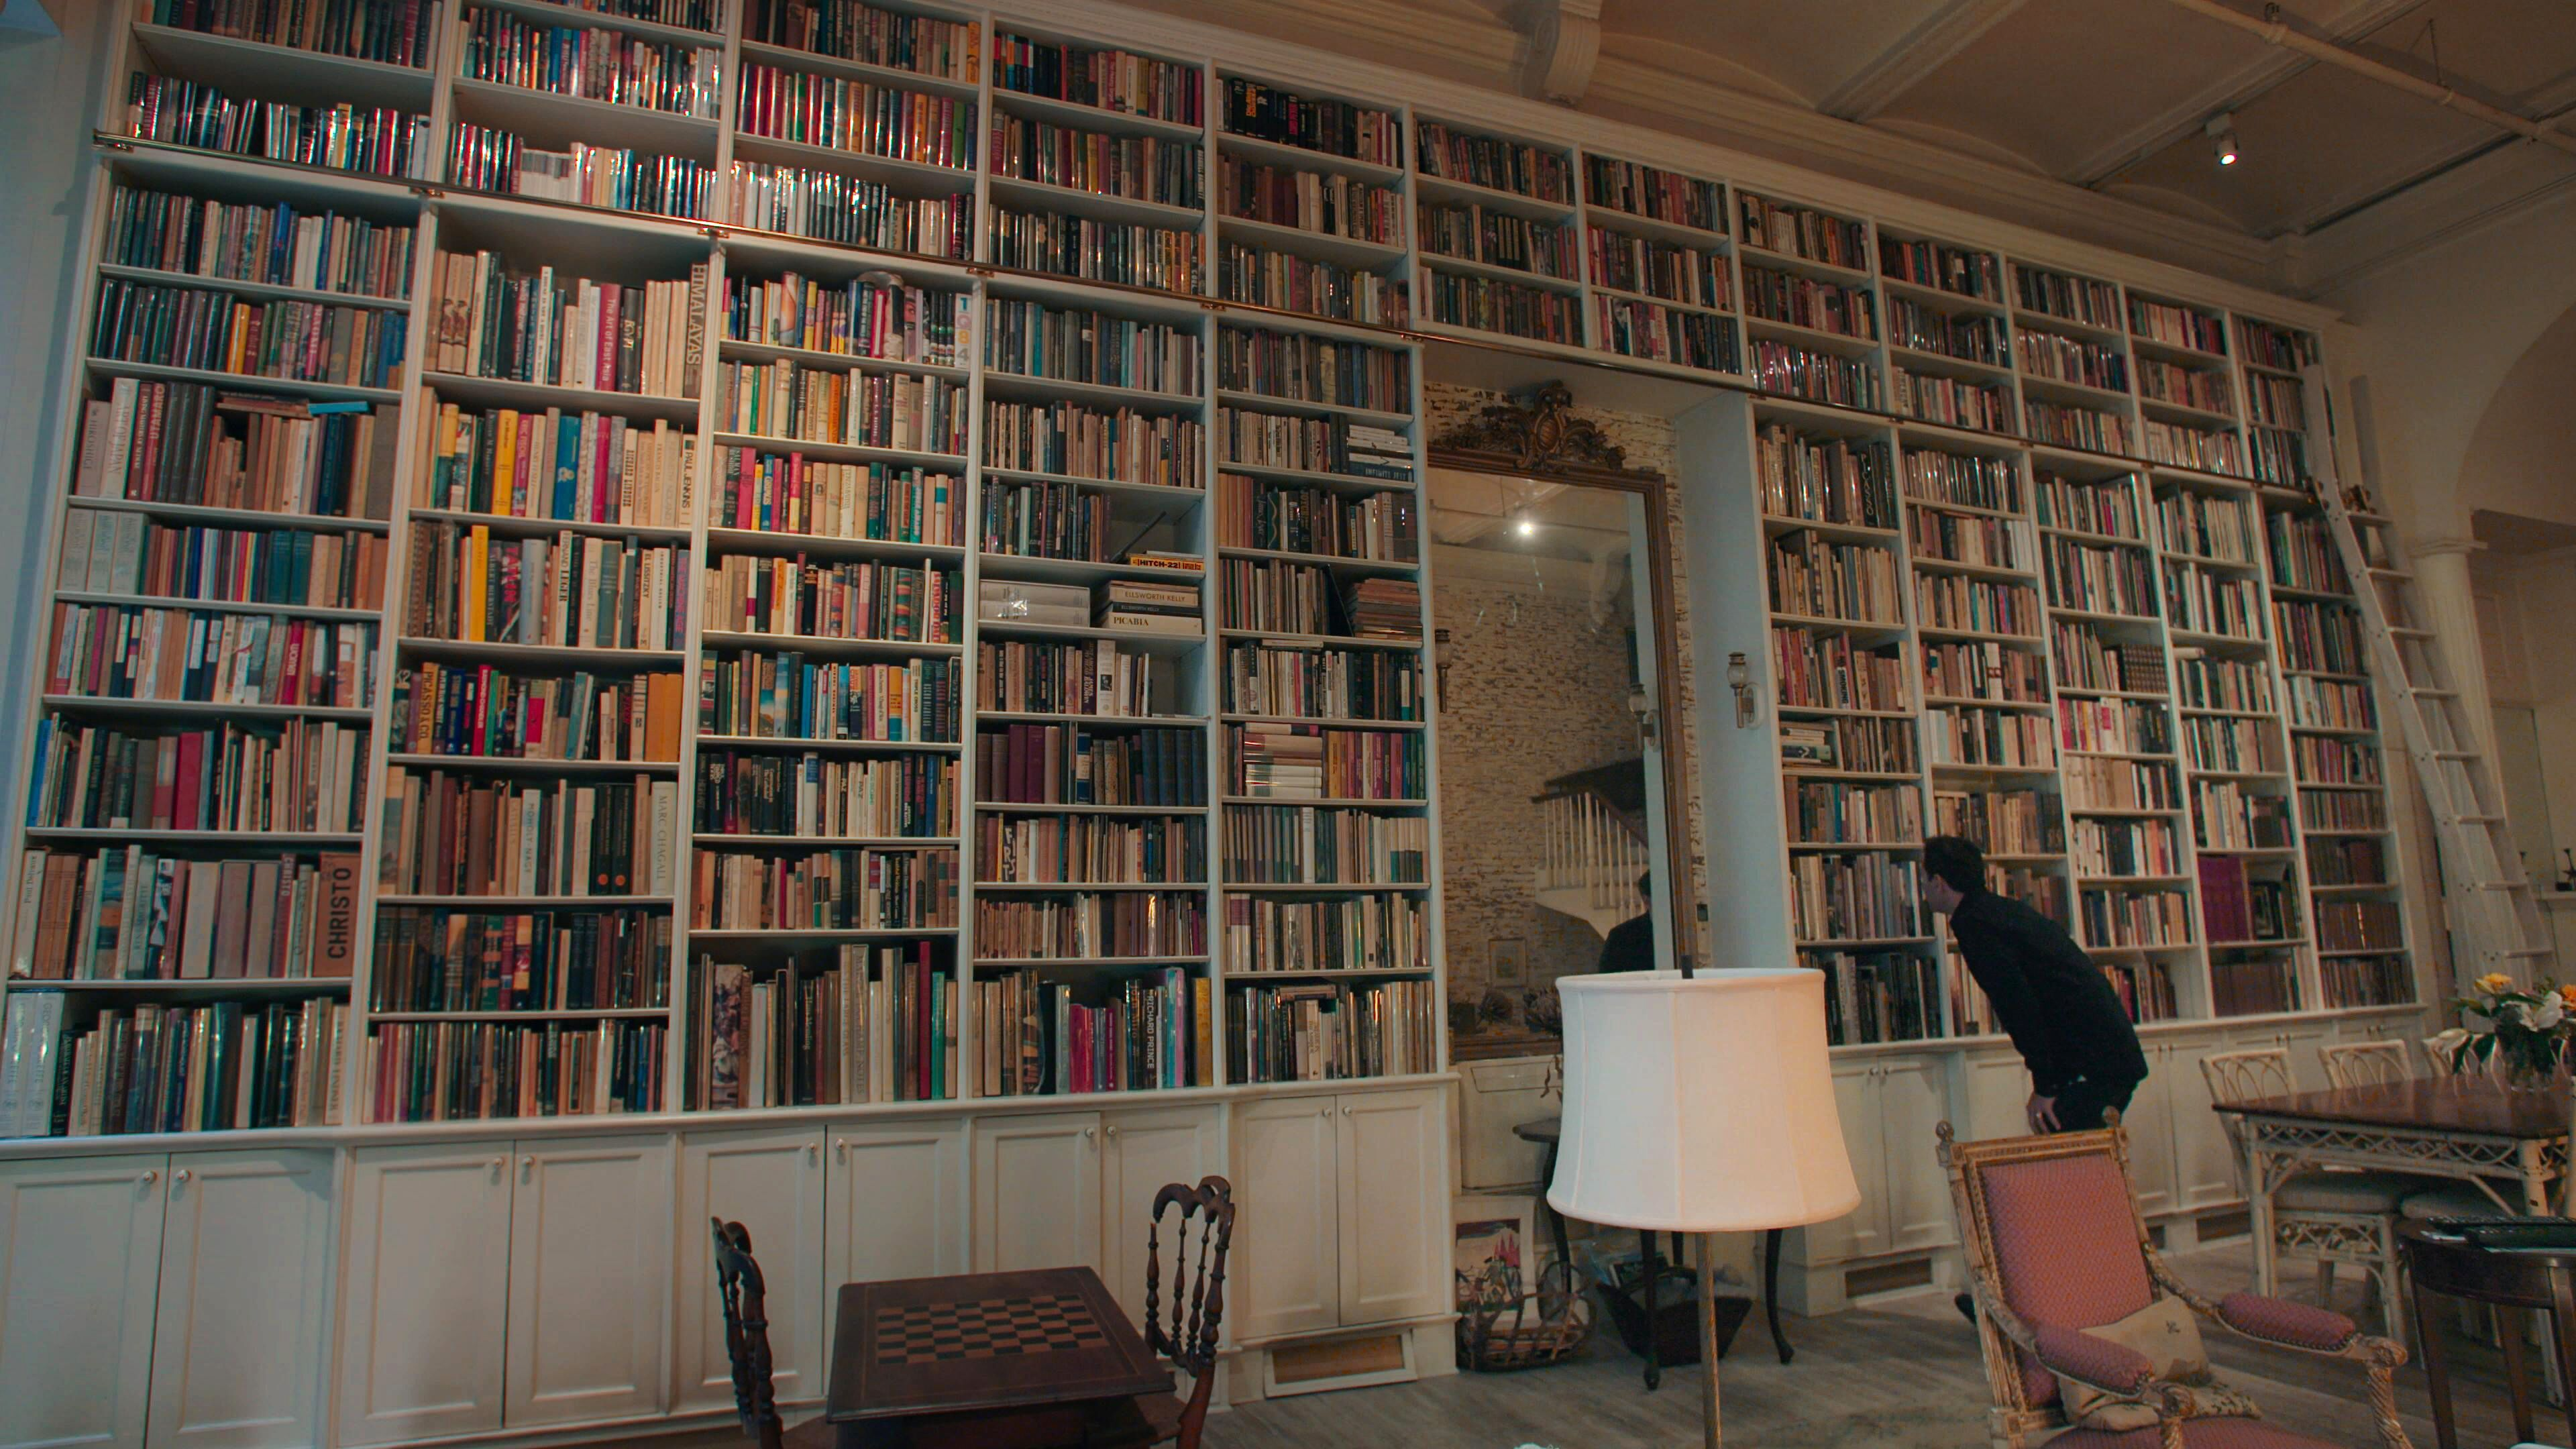 Pin by Heather on Home Rare books, Antiquarian books